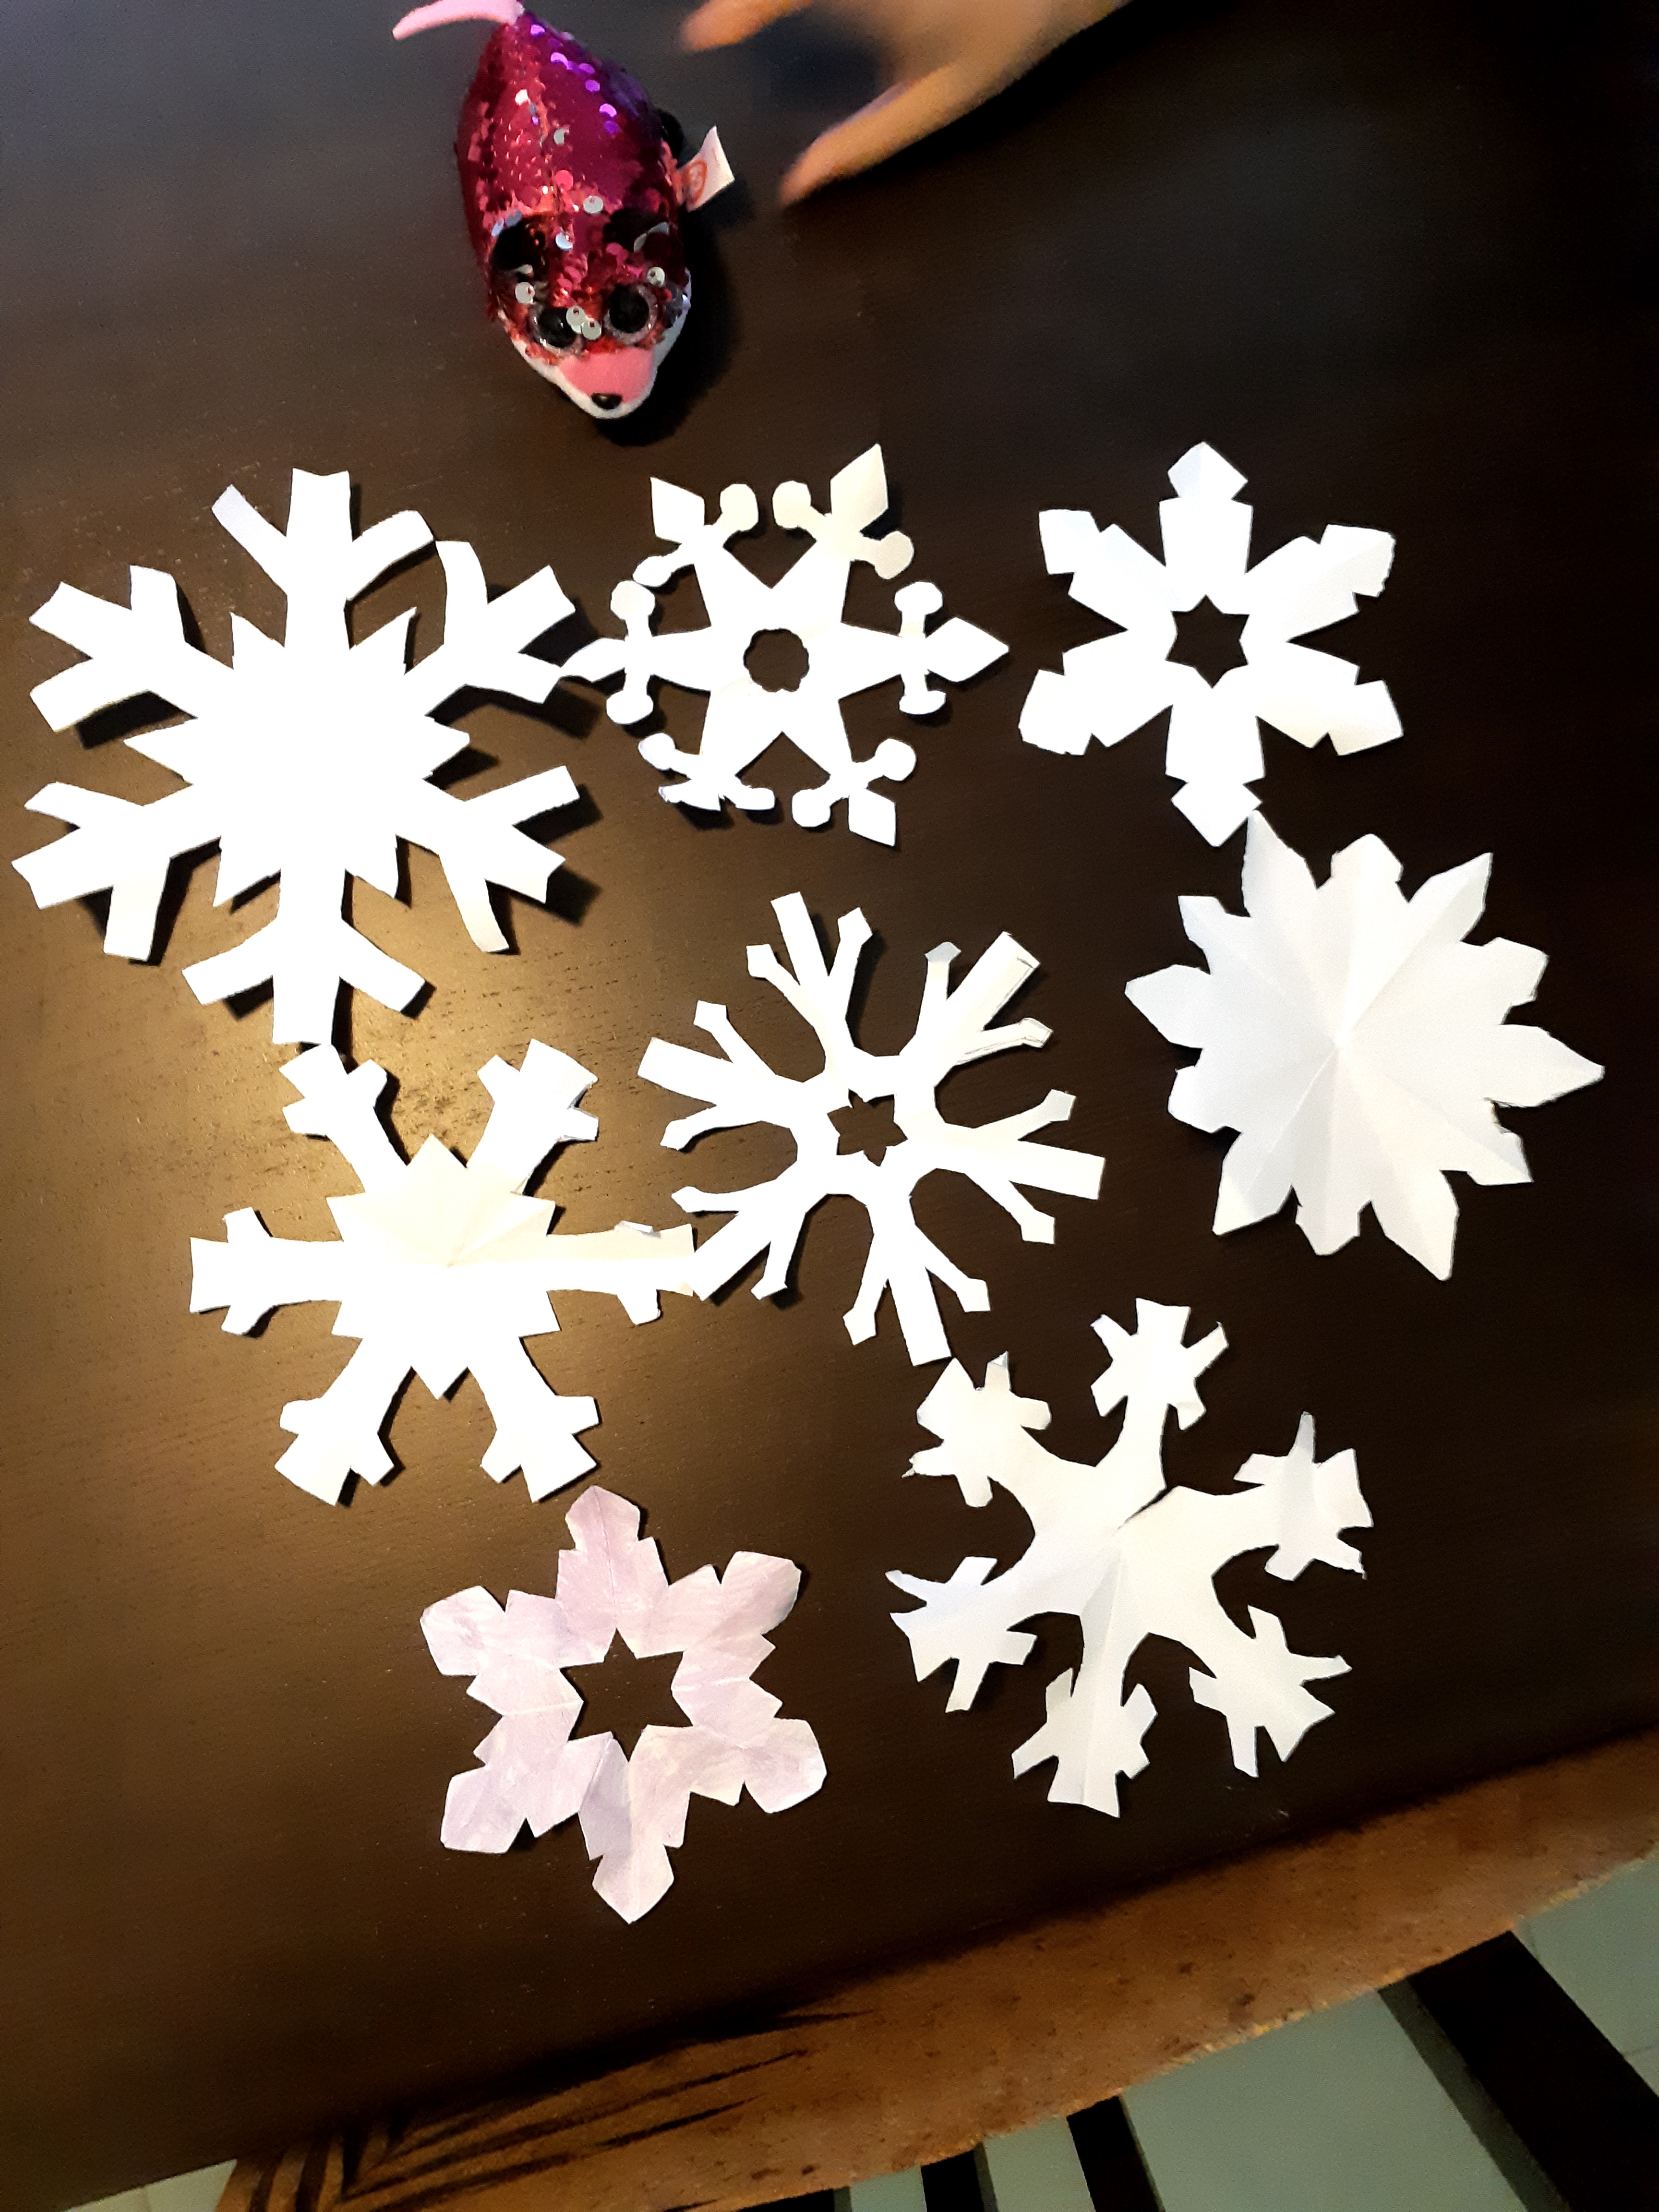 /uploaded_files/media/gallery/1598167748Elmie 1S snowflakes.jpg